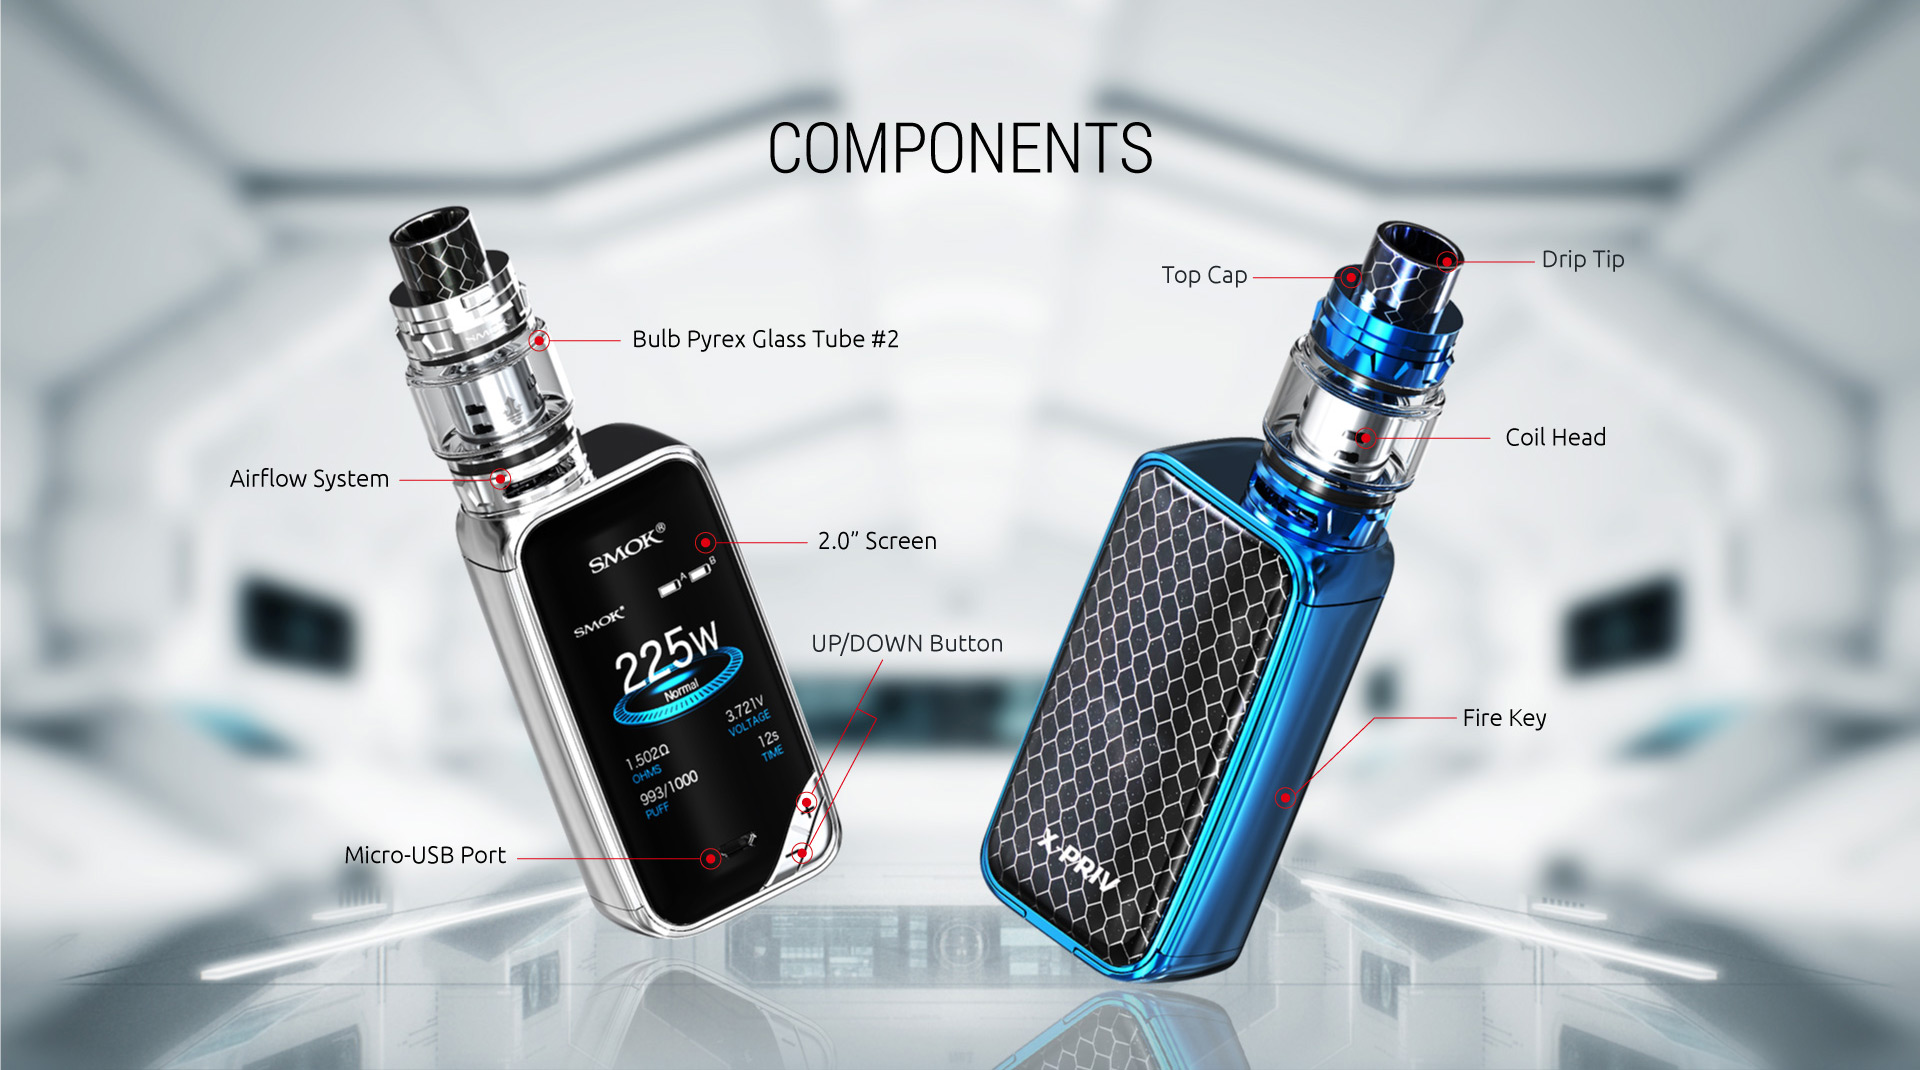 Smok X Priv 225W Kit components